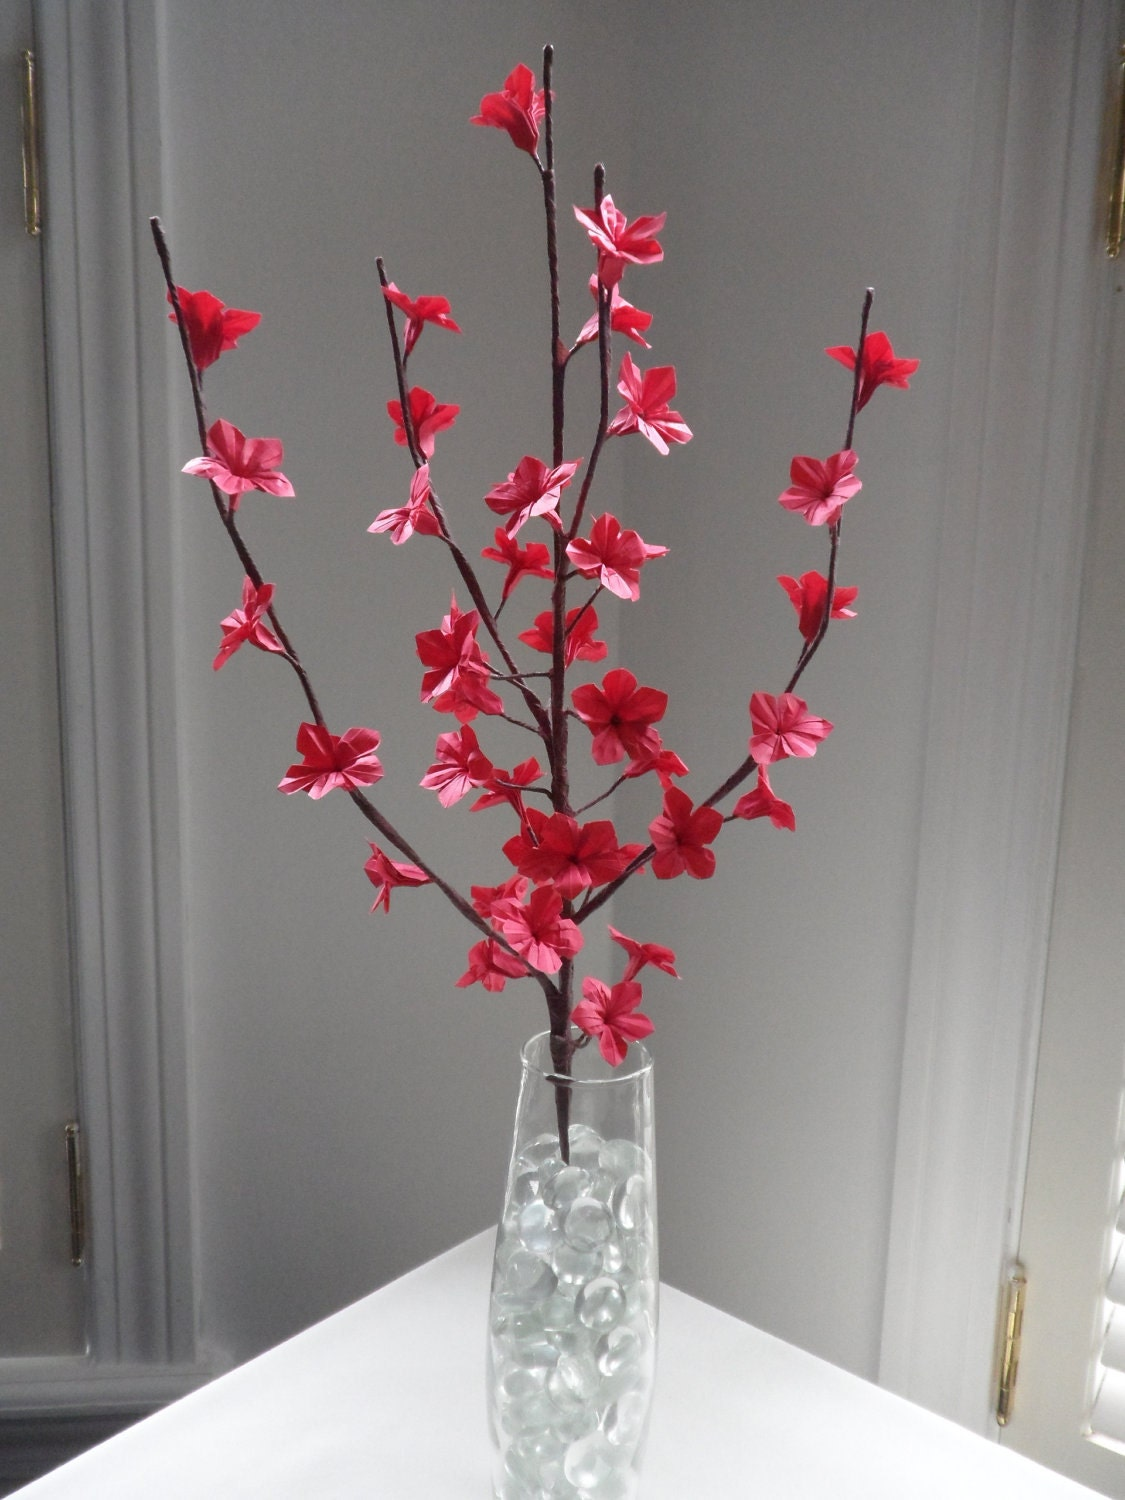 Origami Paper Cherry Blossom Flowers-Red - photo#39